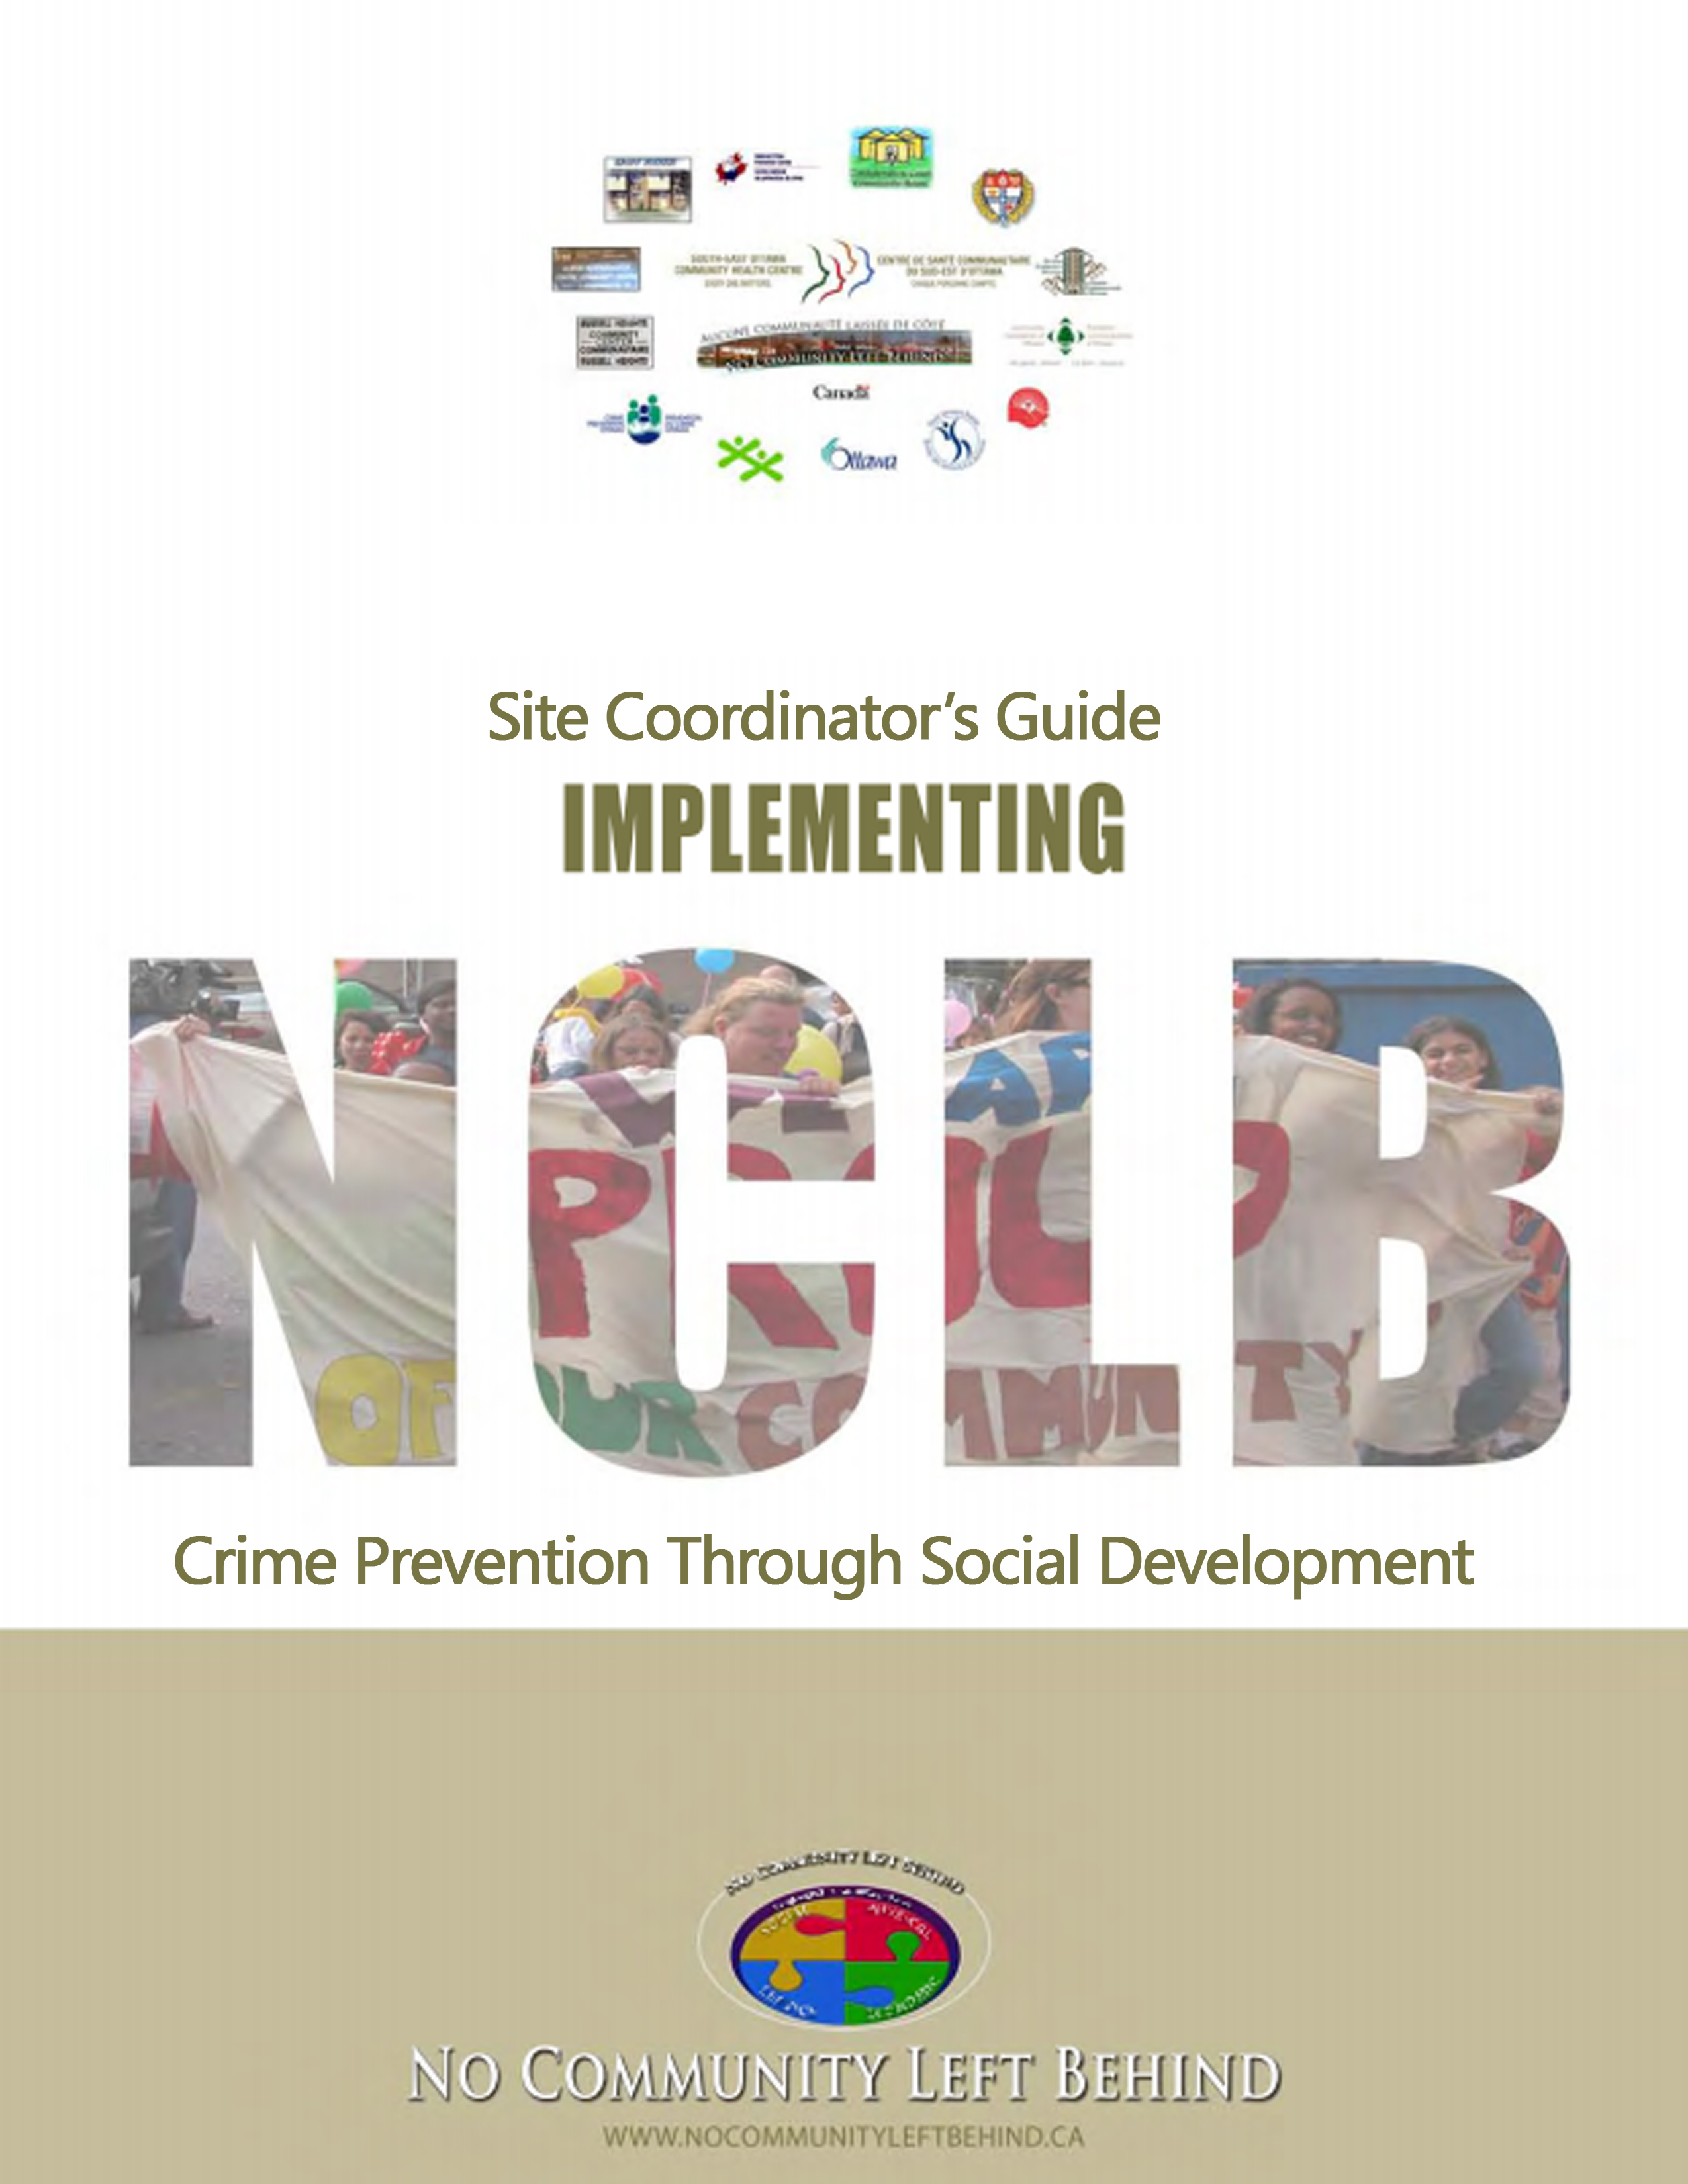 Place-based Crime Prevention Guide for Program Coordinator by Abid Ullah Jan